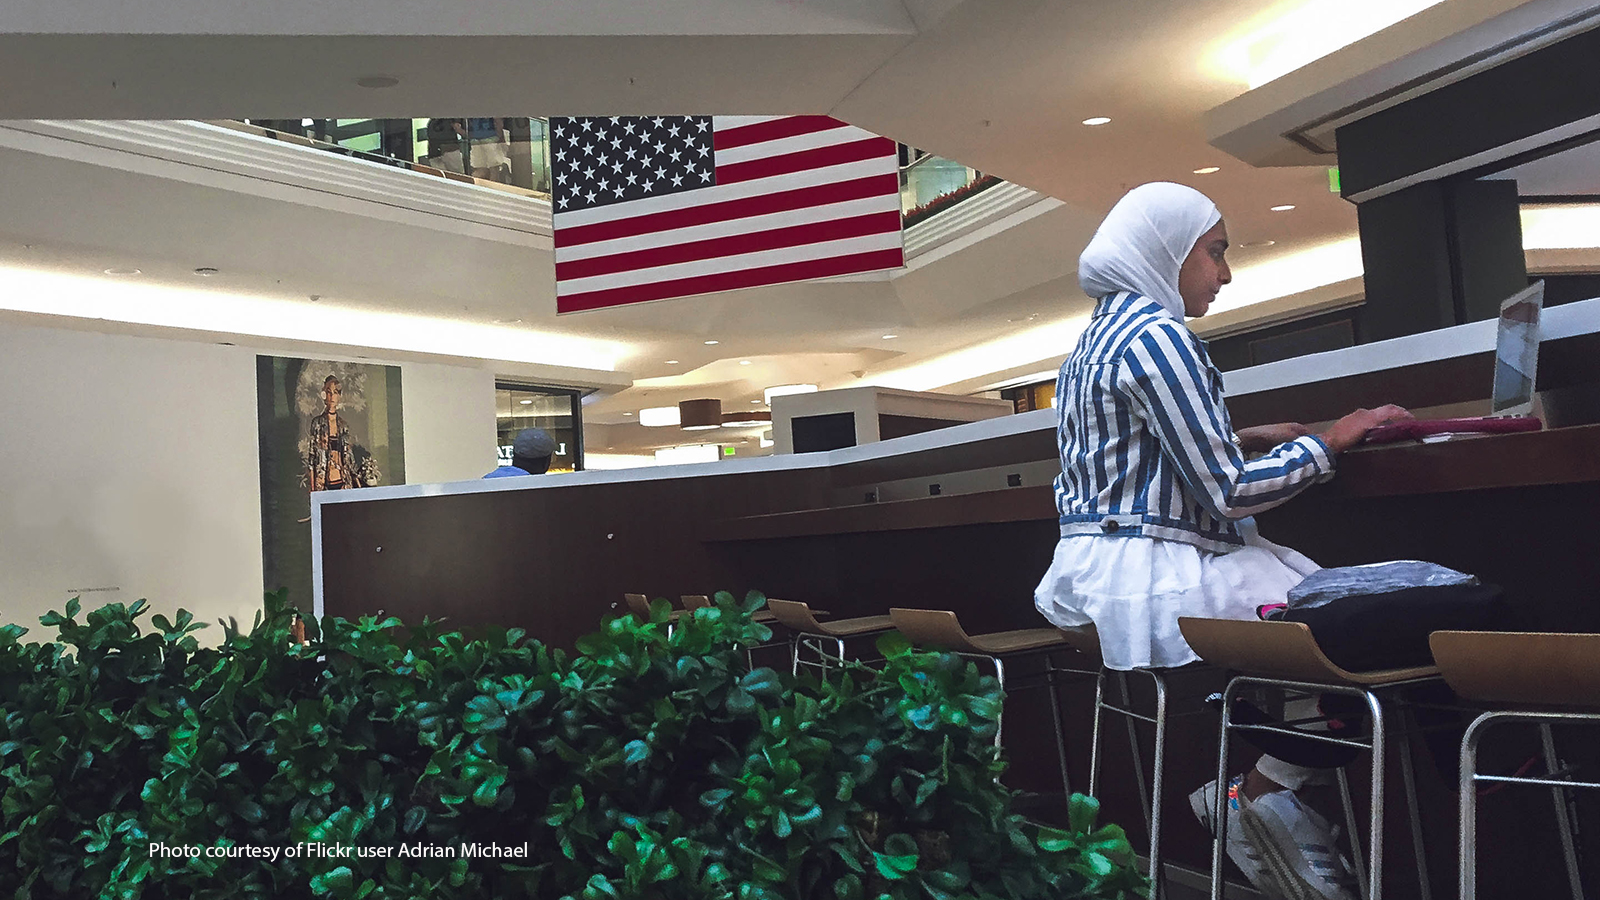 Muslim girl working on a laptop with American flag behind her.